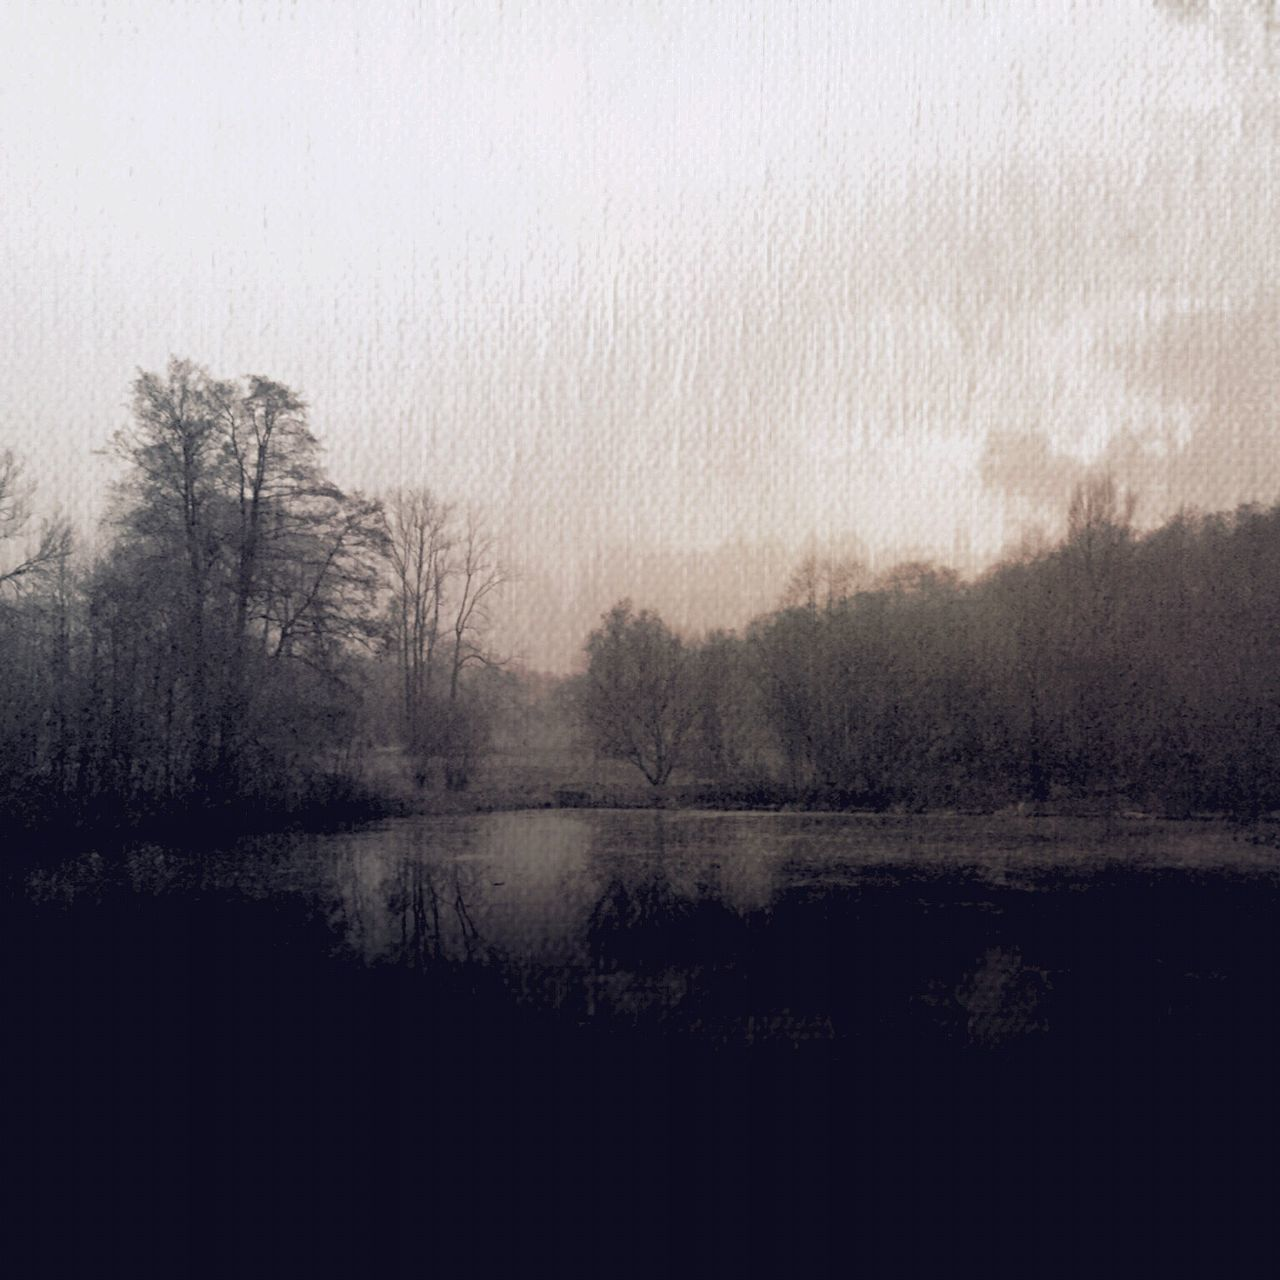 Tree Nature Reflection Water Beauty In Nature Blackandwhitephotography Black And White Photography Black&white Blackandwhite Wintertime Melancholic Cityscapes Melancholy Cold Weather Melancholic Landscapes Landscape_Collection Nature_collection Lake View Painterly Painterly Effect In A Quiet Moment